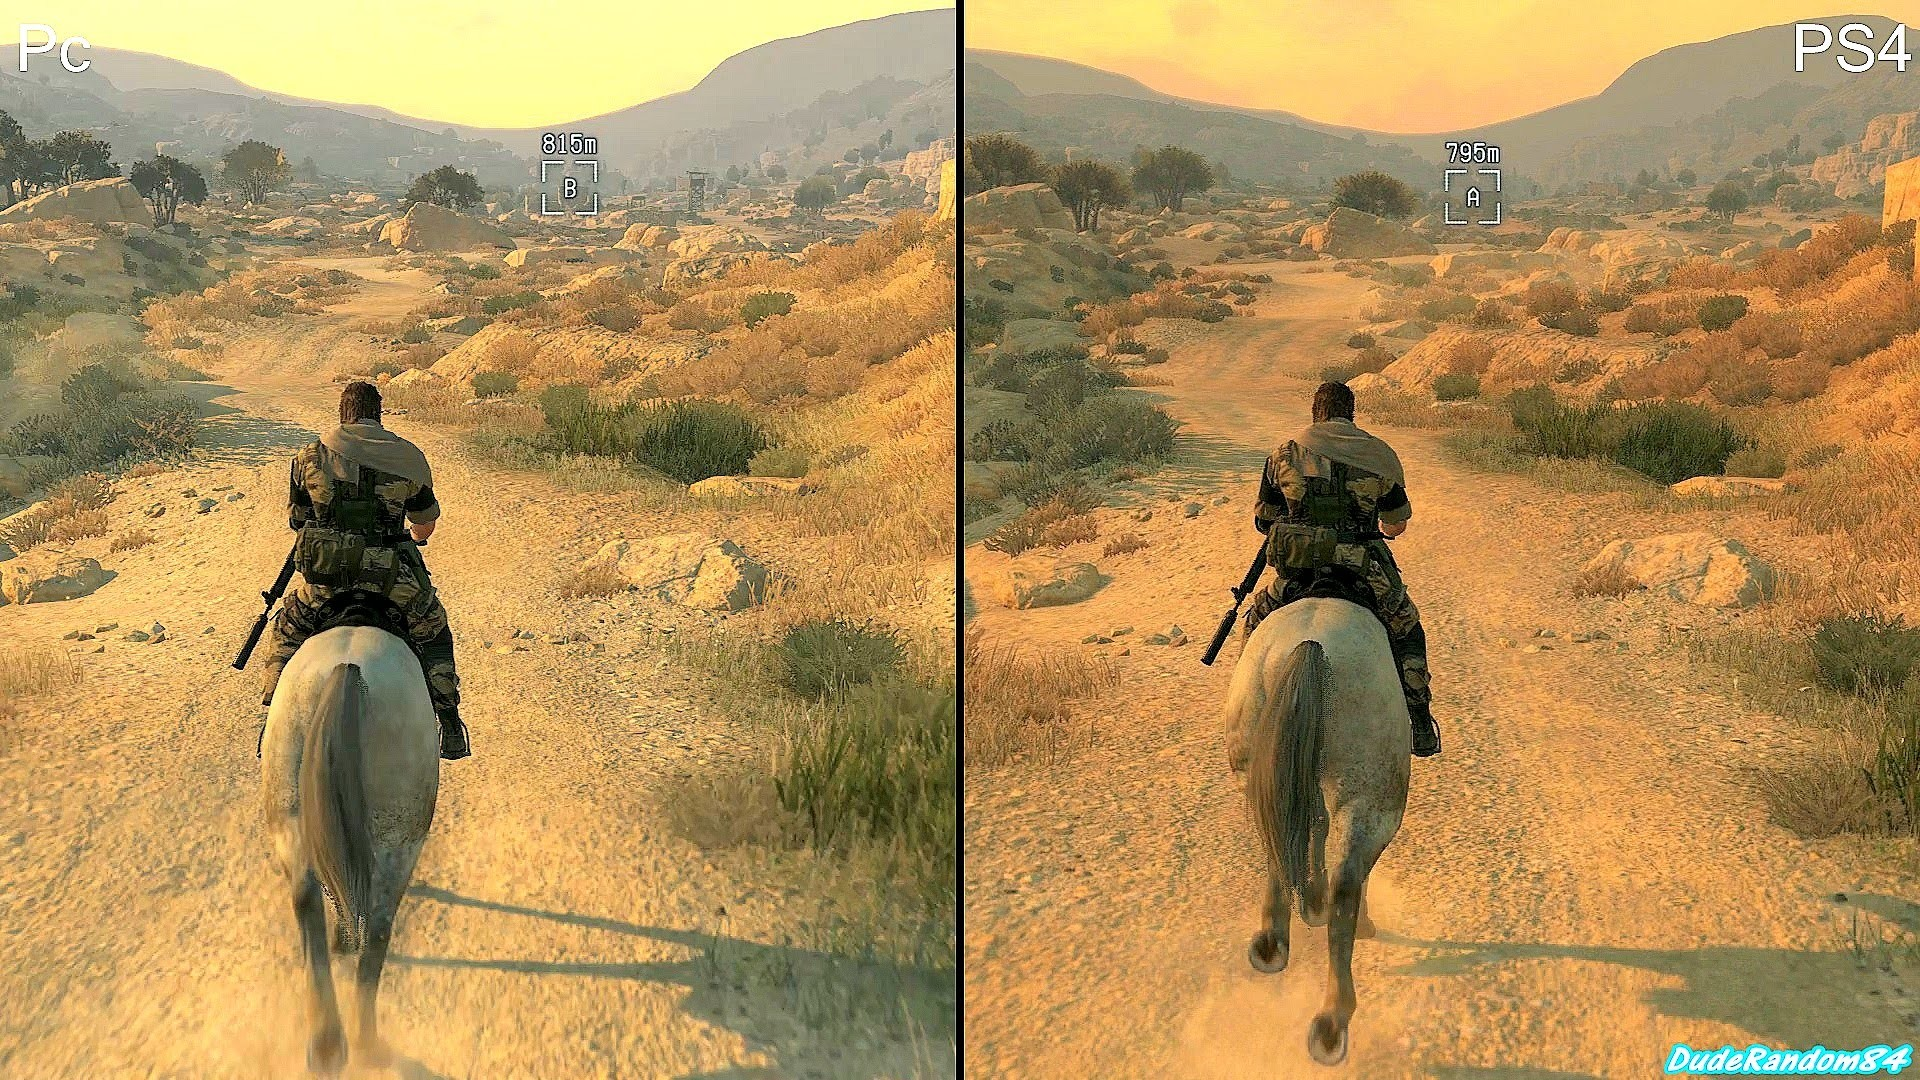 Metal Gear Solid 5 The Phantom Pain PS4 Vs Pc Graphics Comparison – YouTube